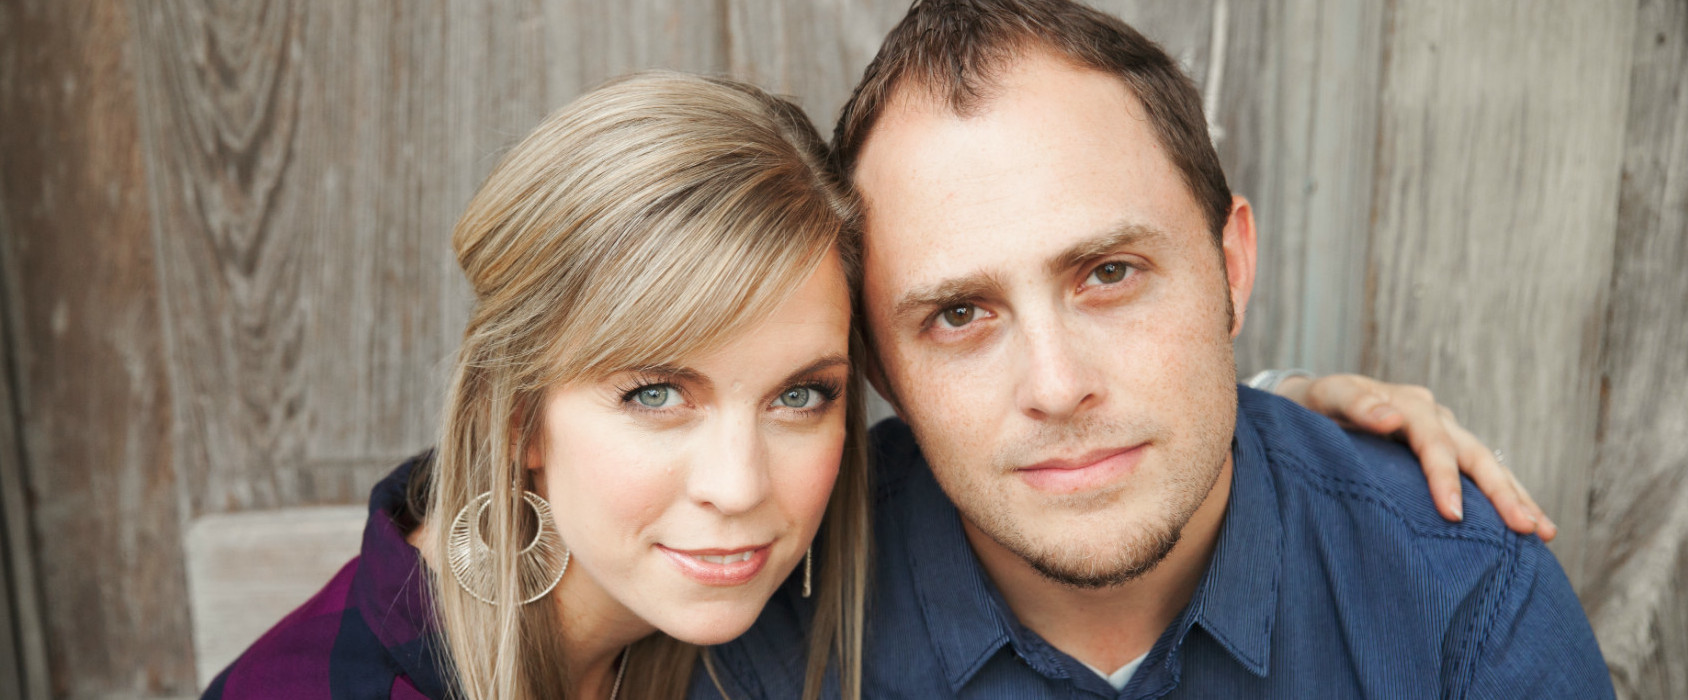 DAVE & JESS RAY'S 'HOLD YOU' CAPTURING PARENTS' HEARTS